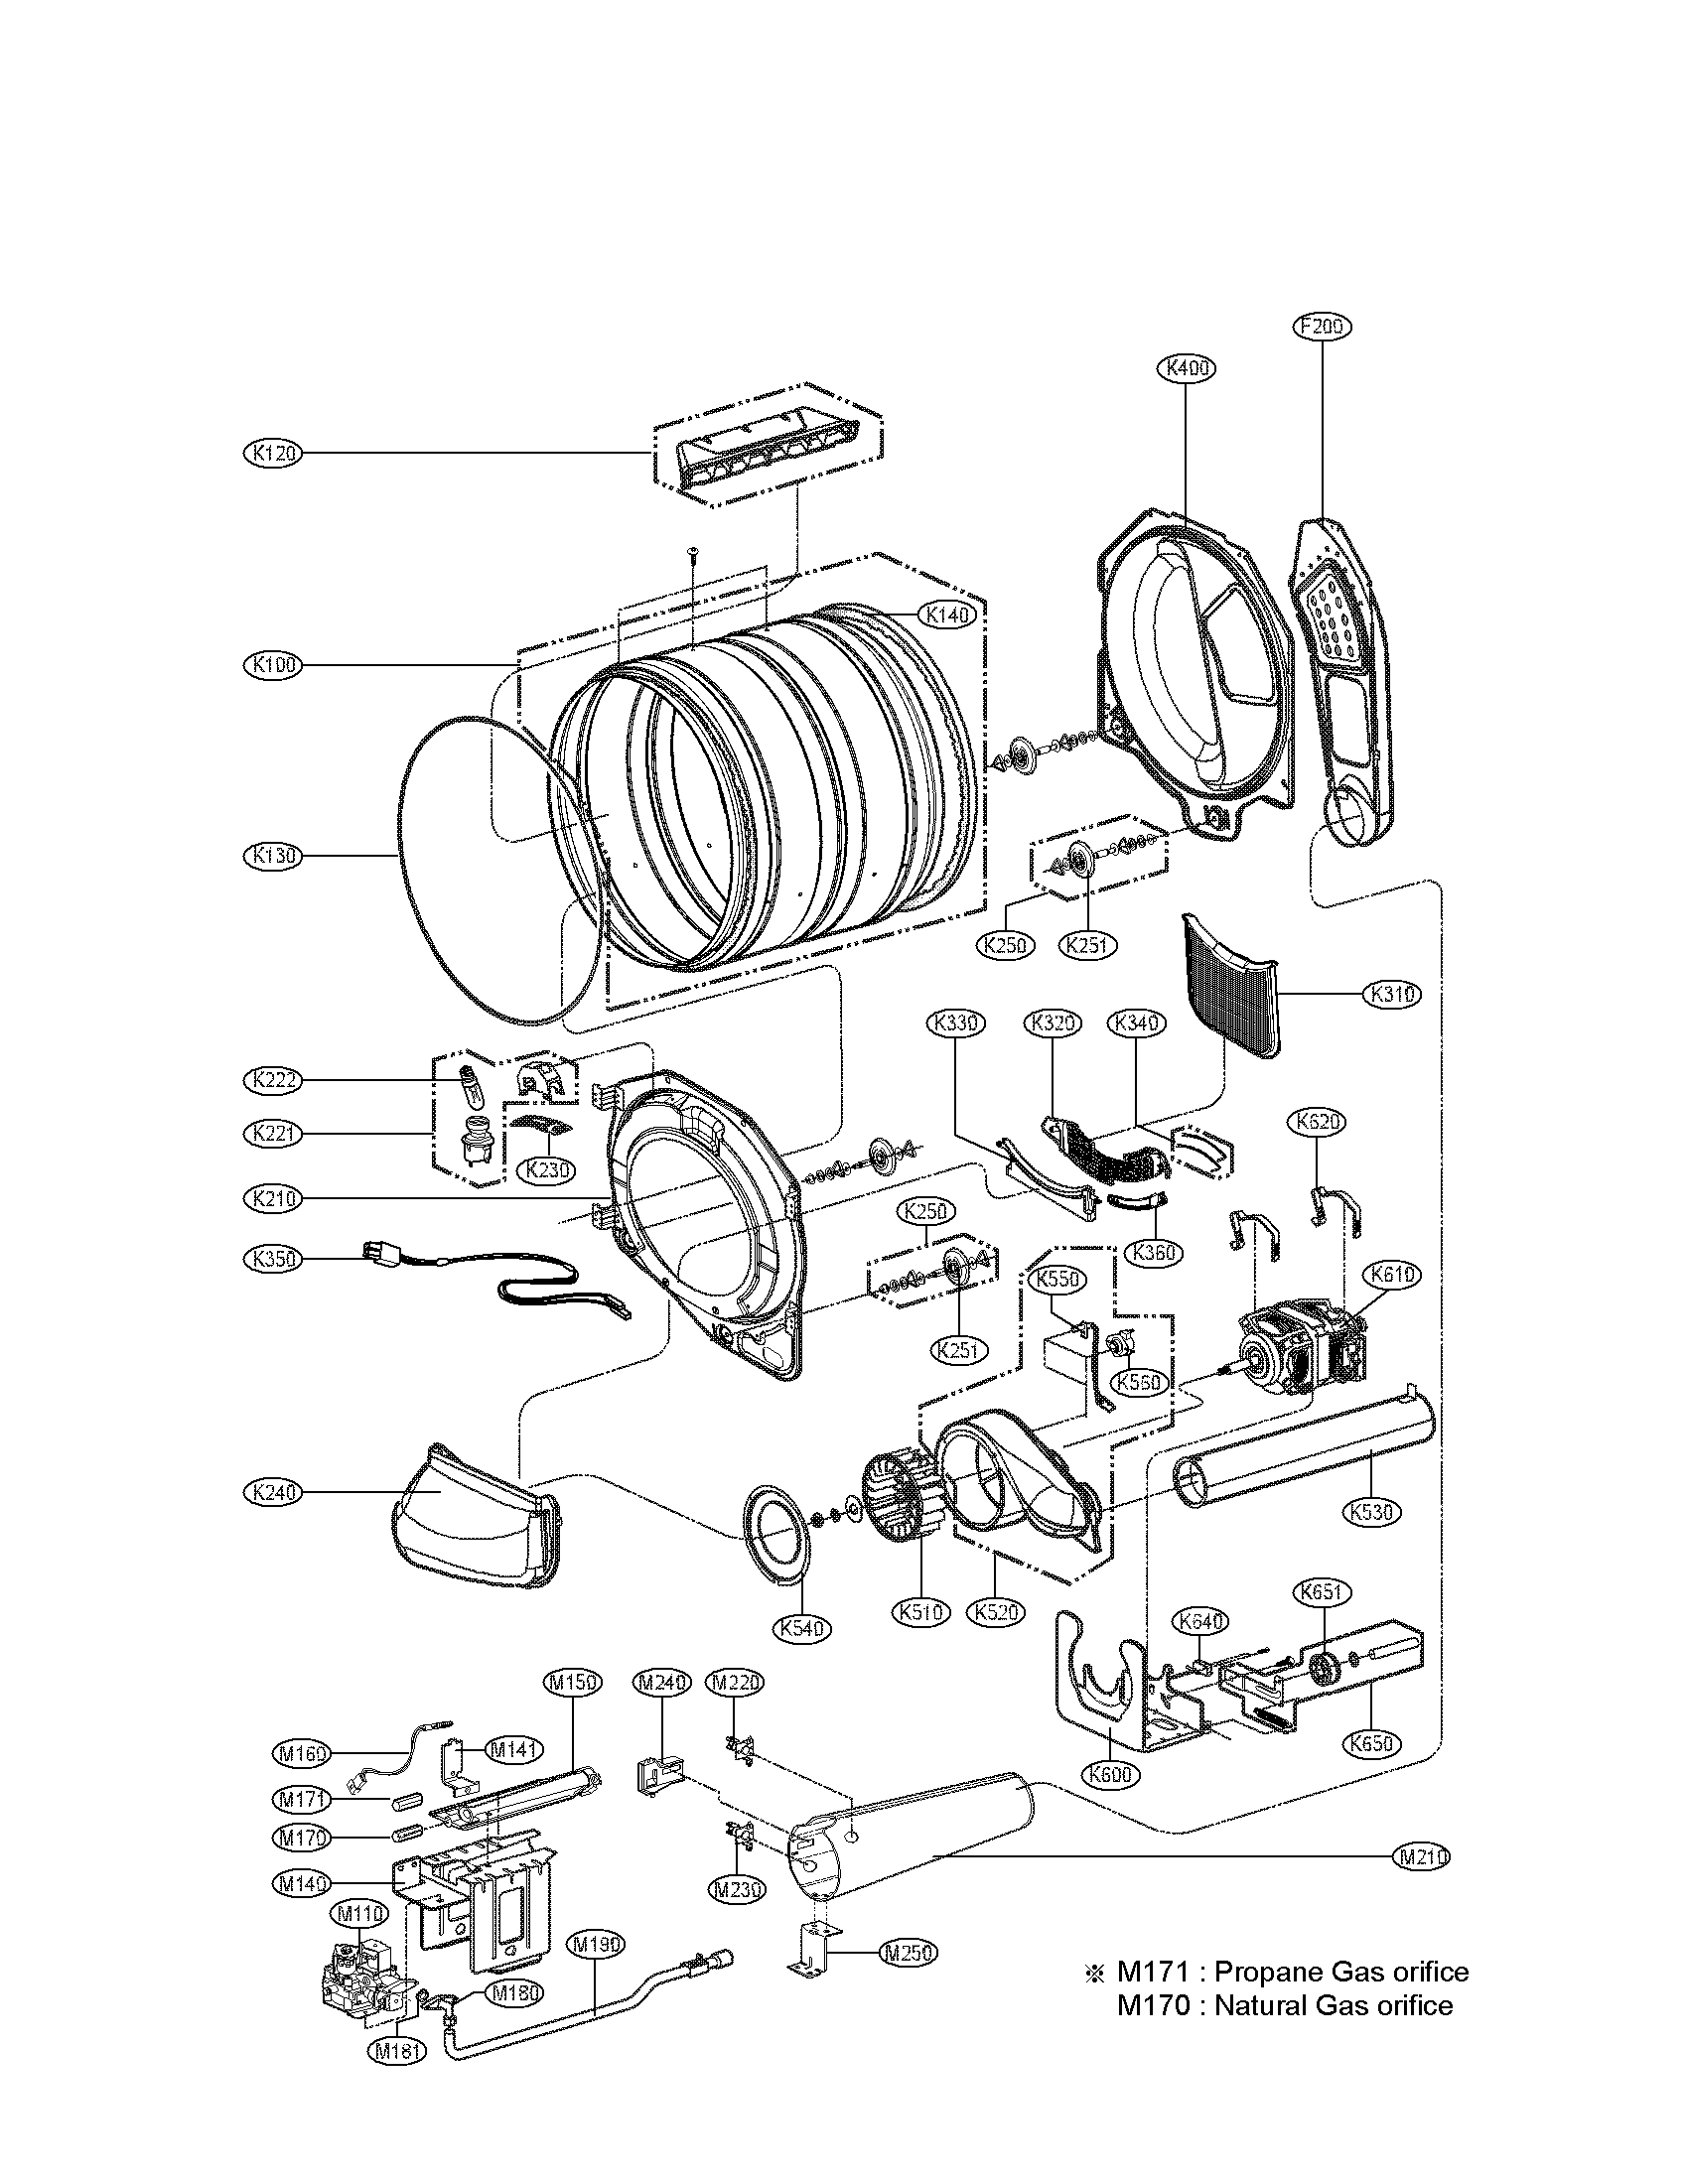 DRUM AND MOTOR PARTS GAS Diagram & Parts List for Model